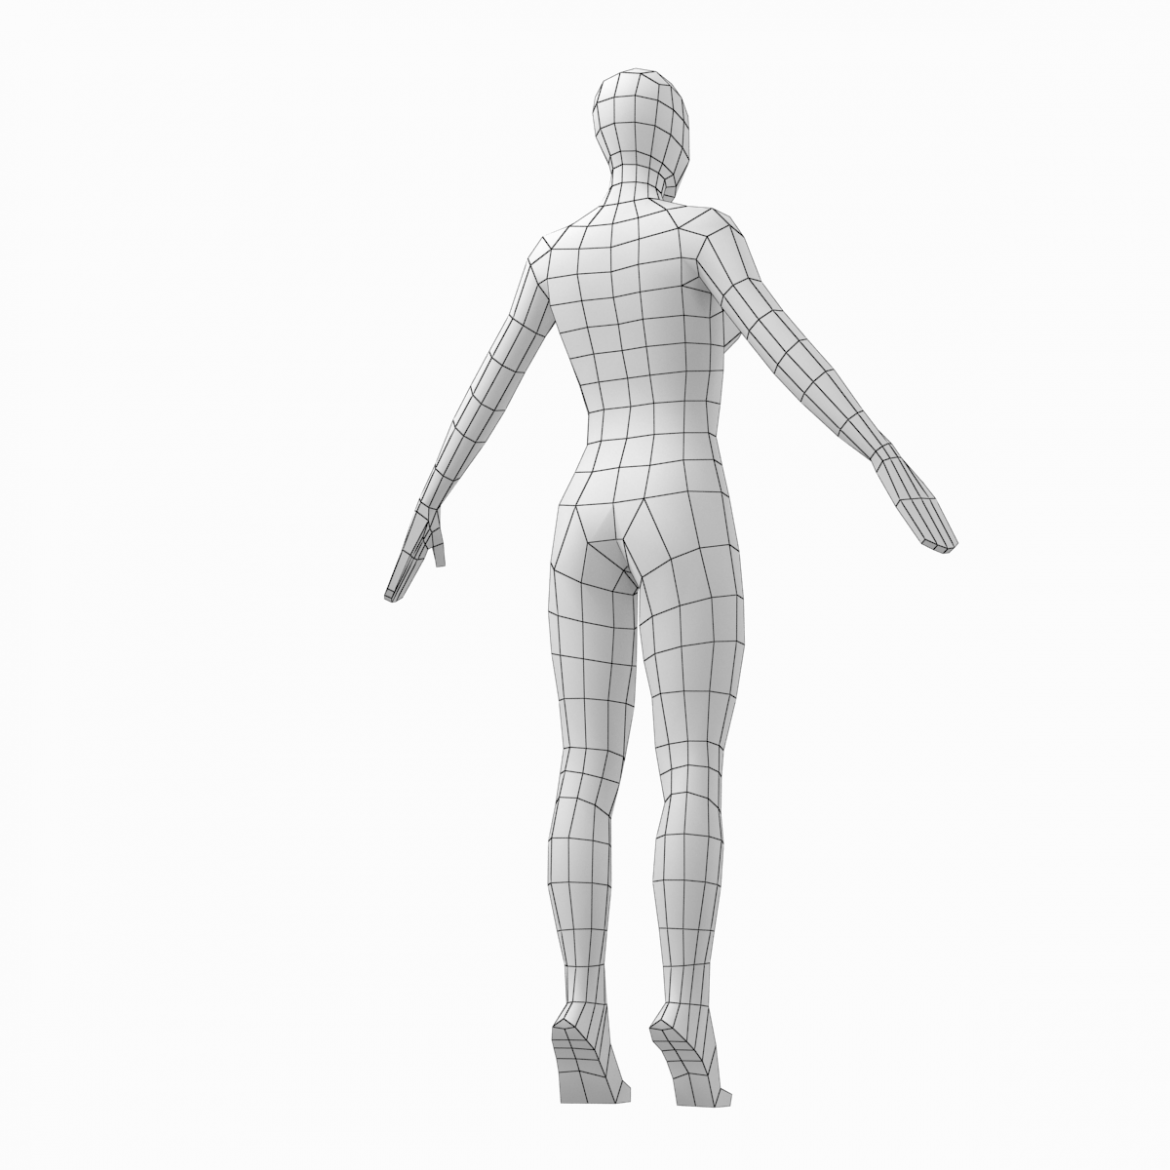 male and female low poly base mesh in a-pose 3d model 3ds max fbx c4d ma mb obj 301271